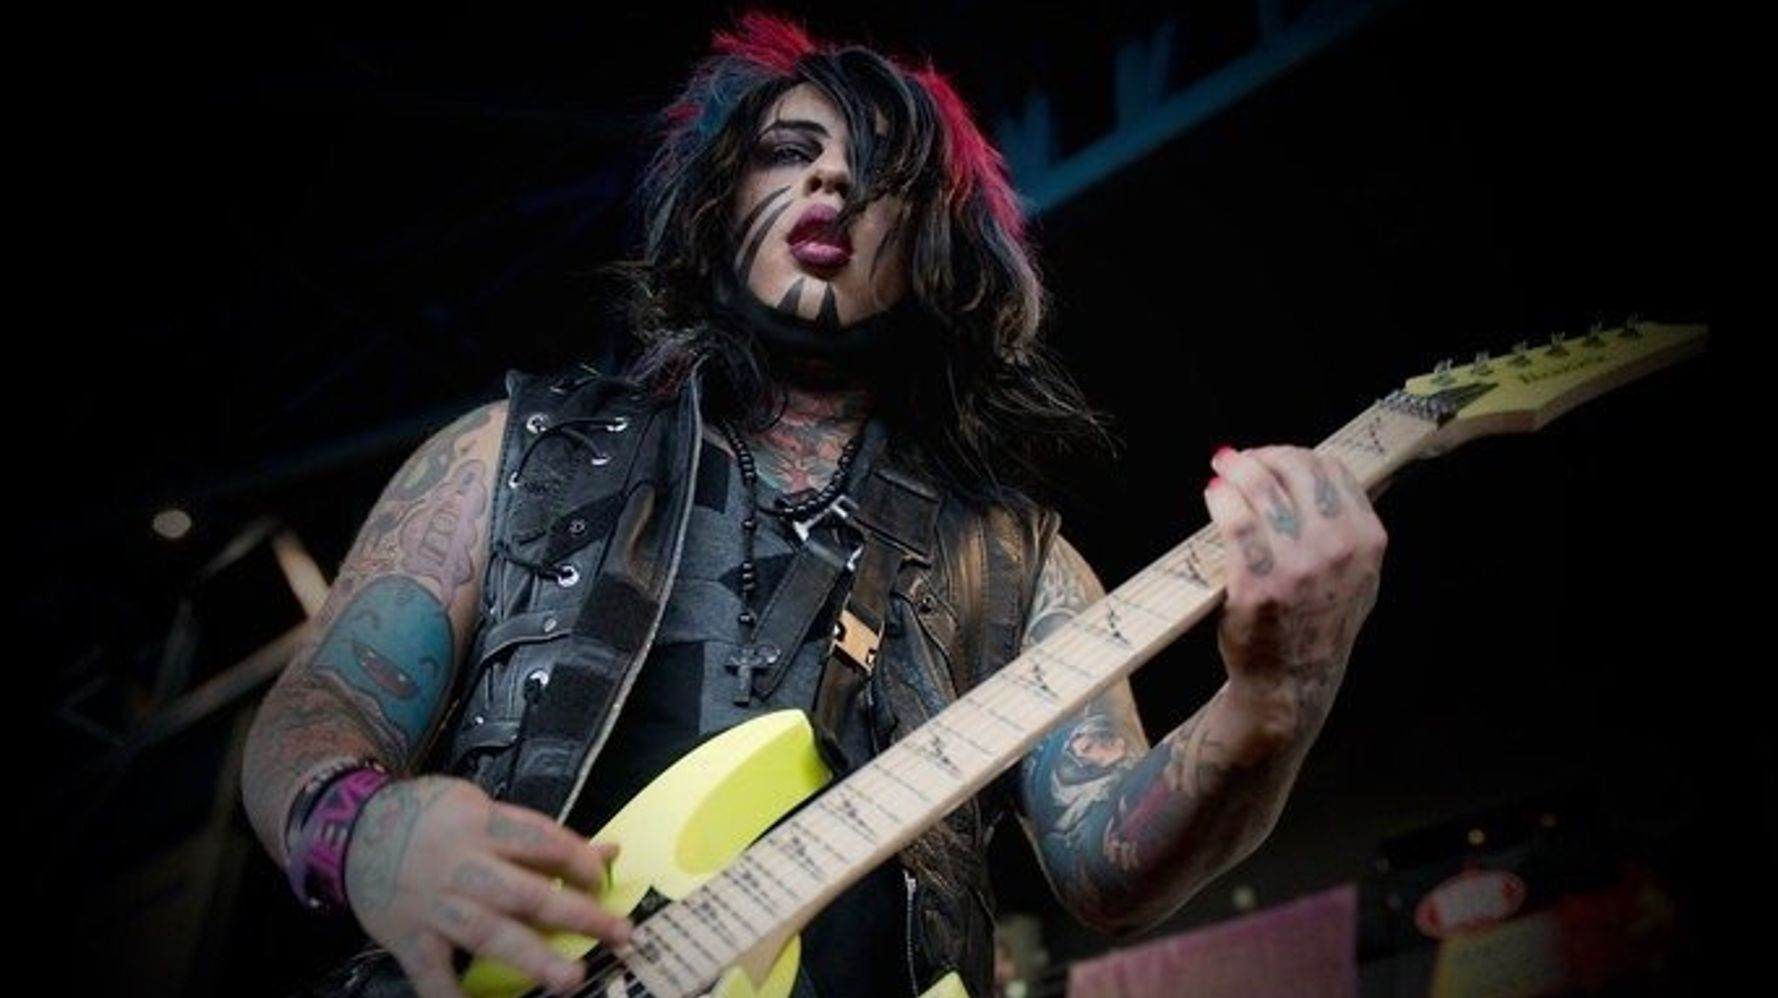 Dahvie Vanity Raped A Child  Police Gave Him A Warning  Now 21 Women